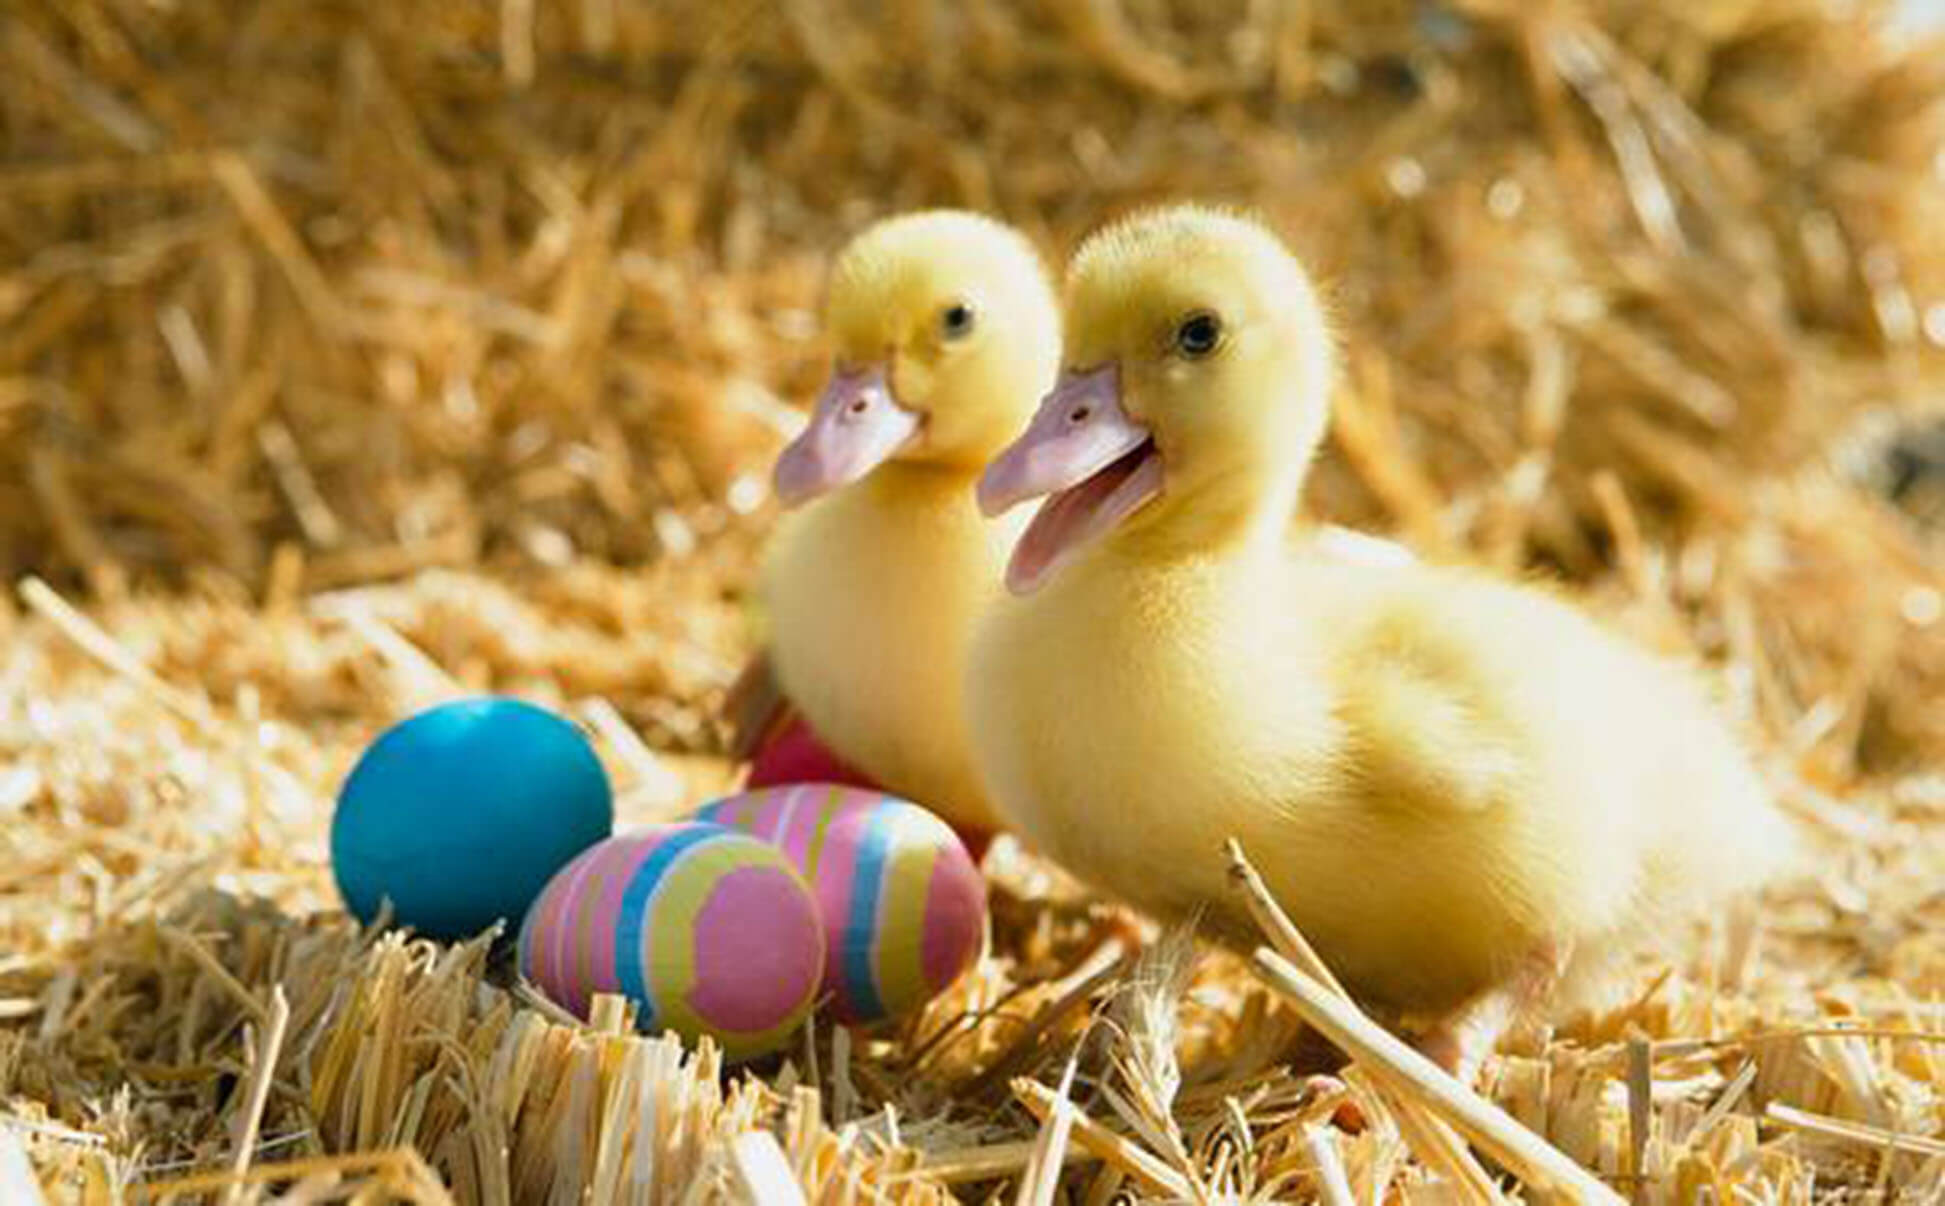 Ducks Cute Easter Wallpaper